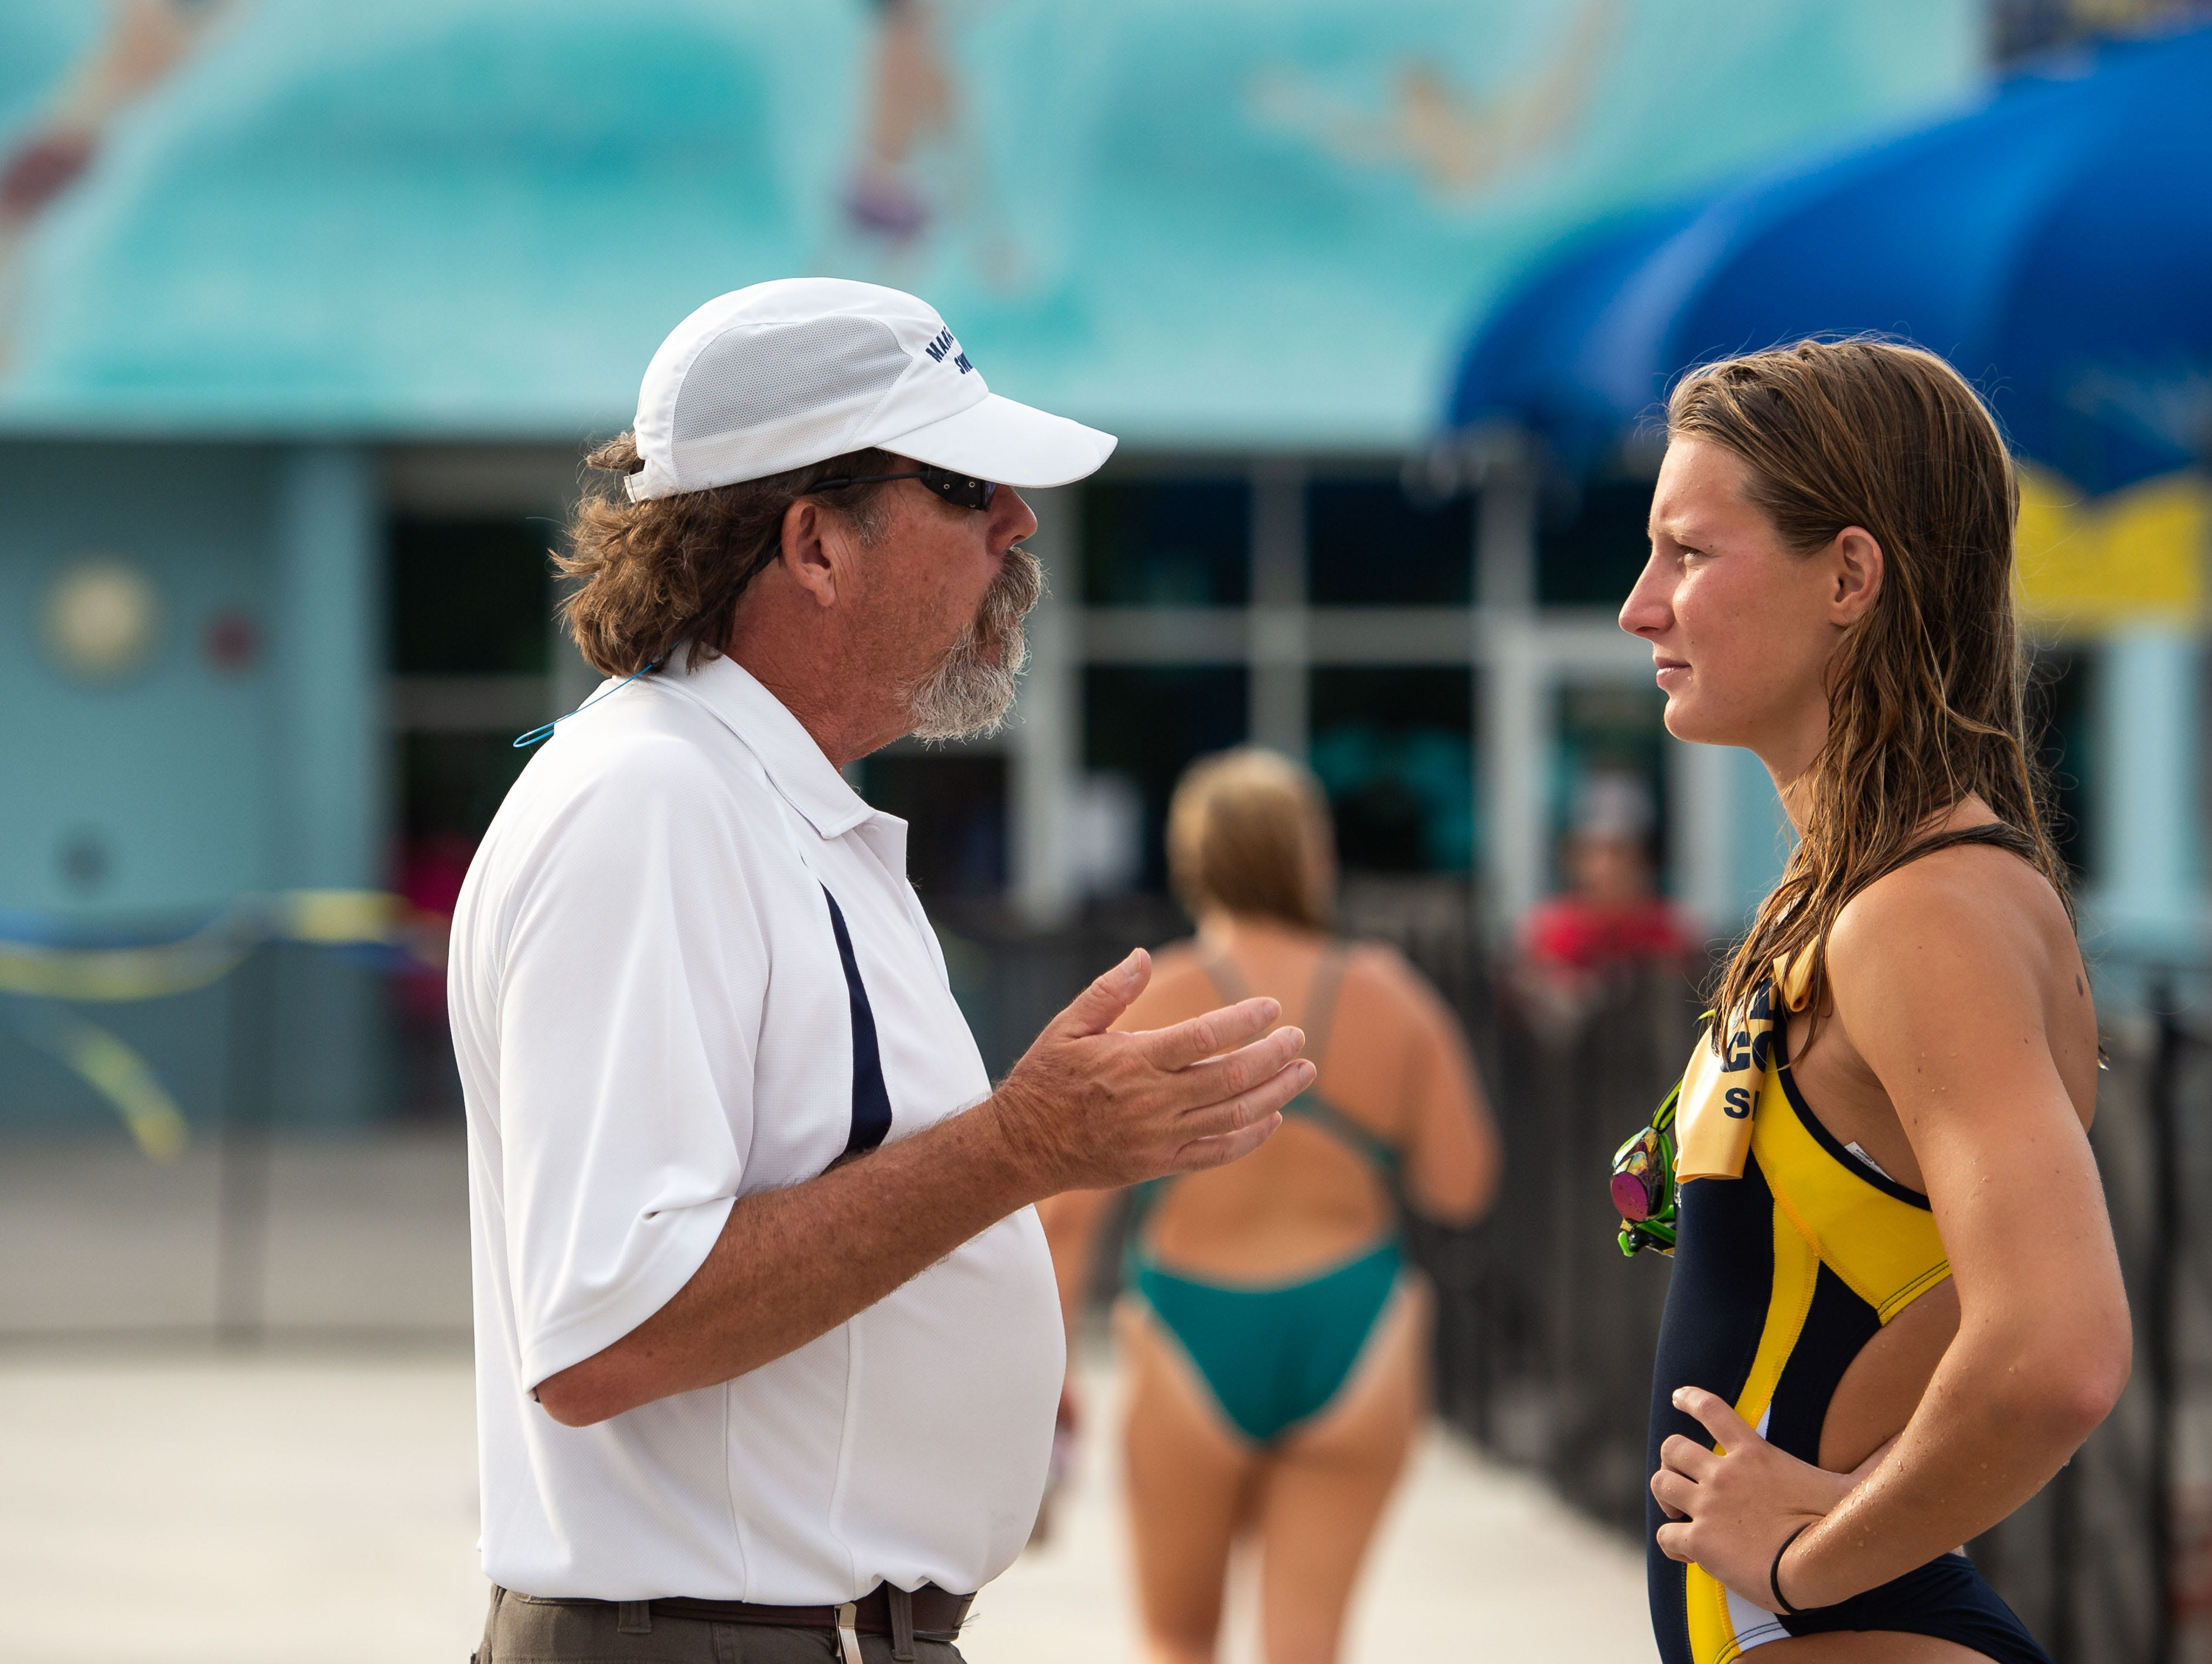 Martin County coach Jim McCombs talks with swimmer Delaney Simpkins as schools compete at the Martin County Championships high school swim and dive meet Thursday, Oct. 11, 2018, at Sailfish Splash in Stuart.